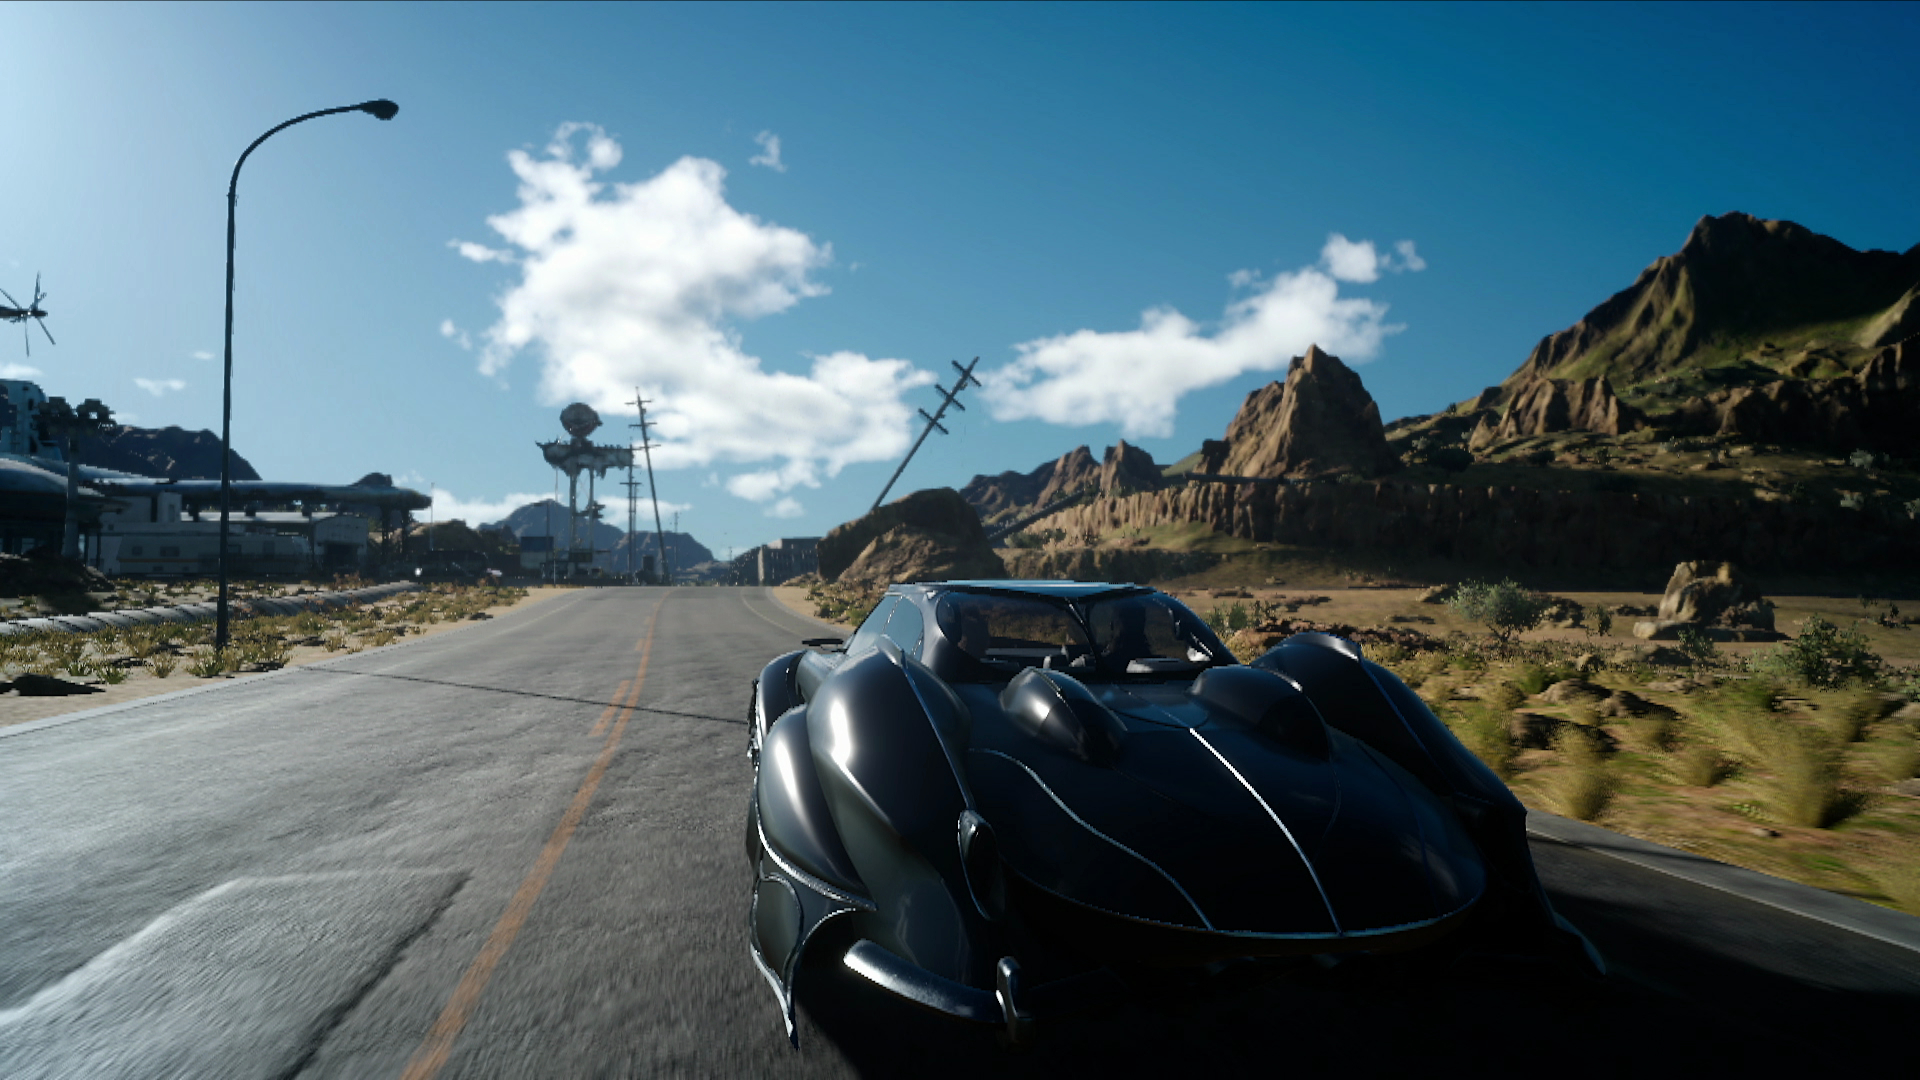 Review Final Fantasy Xv Nag Deluxe Edition Region 3 The